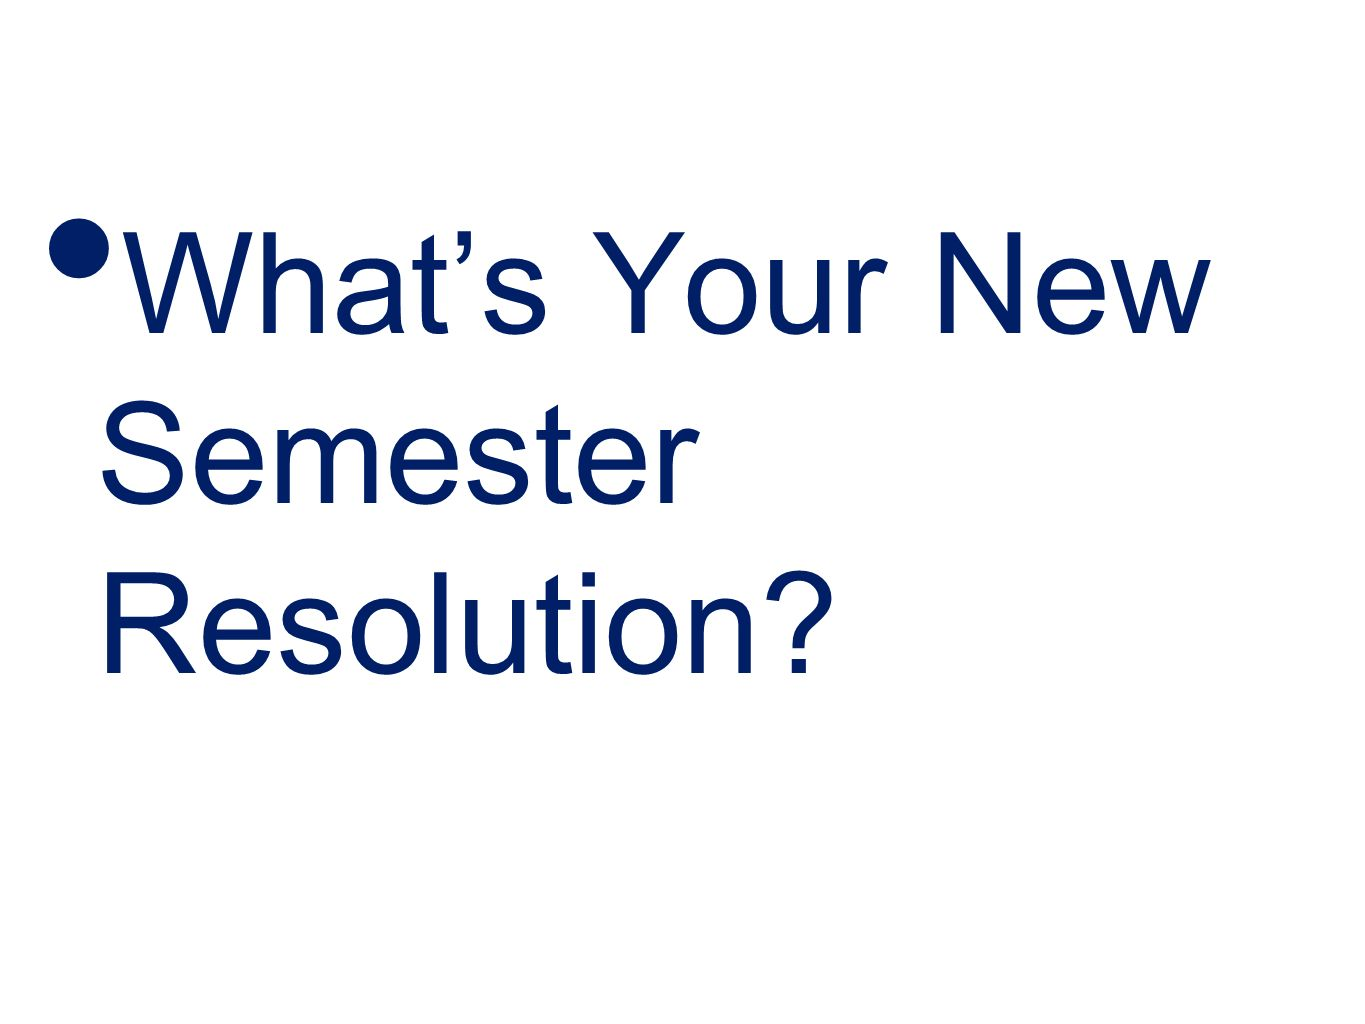 Whats Your New Semester Resolution